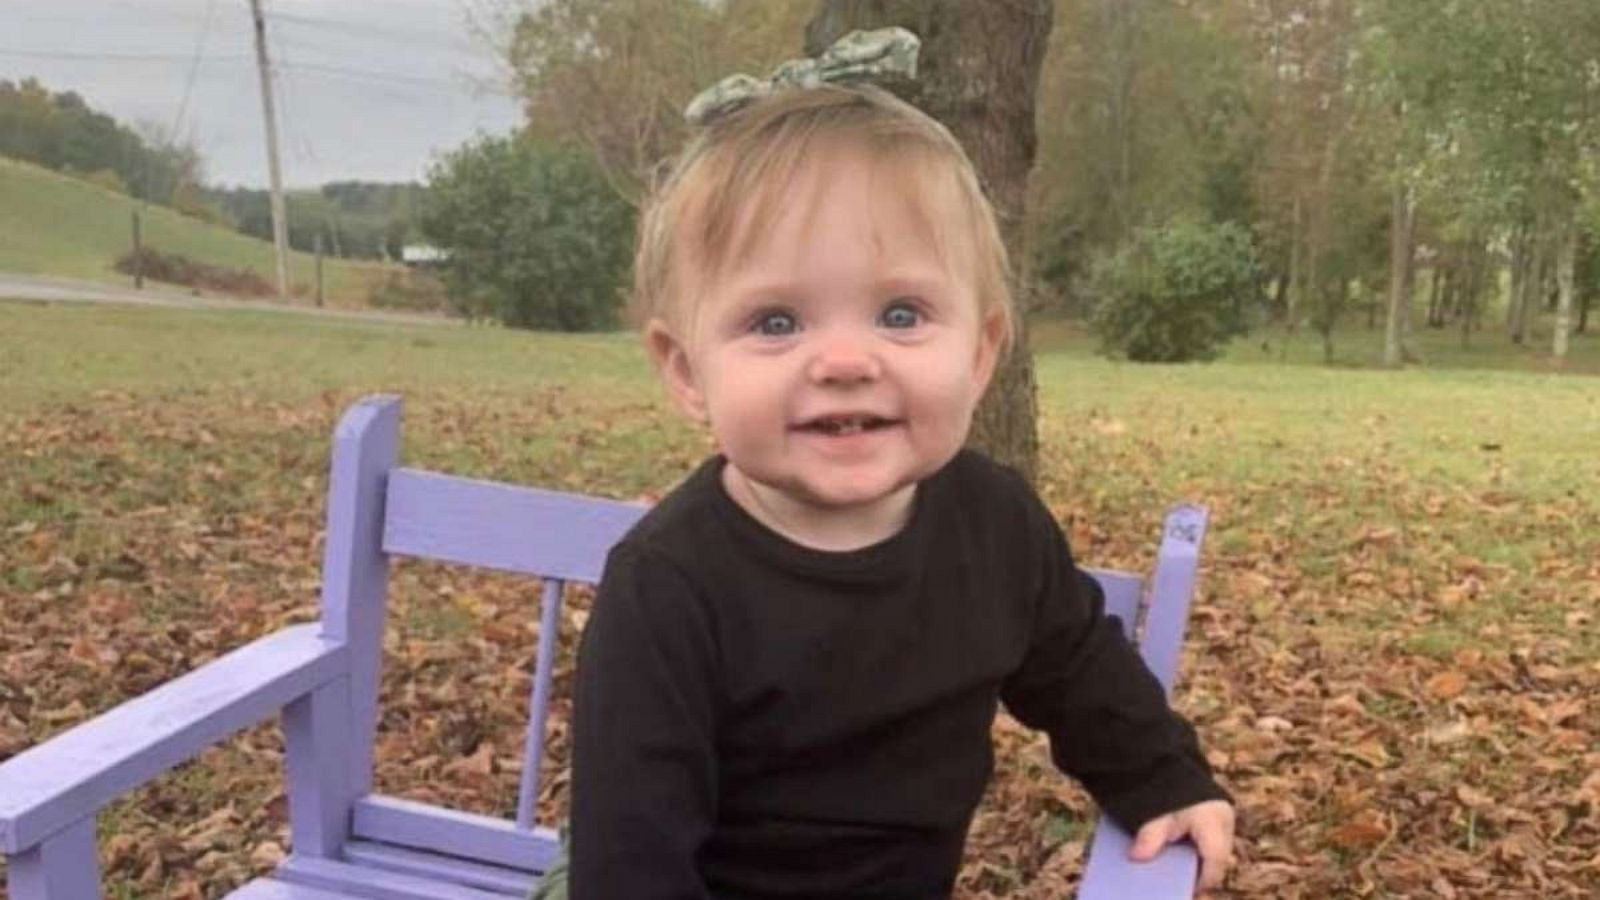 Remains of missing 15-month-old Evelyn Boswell found on family property:  Authorities - ABC News